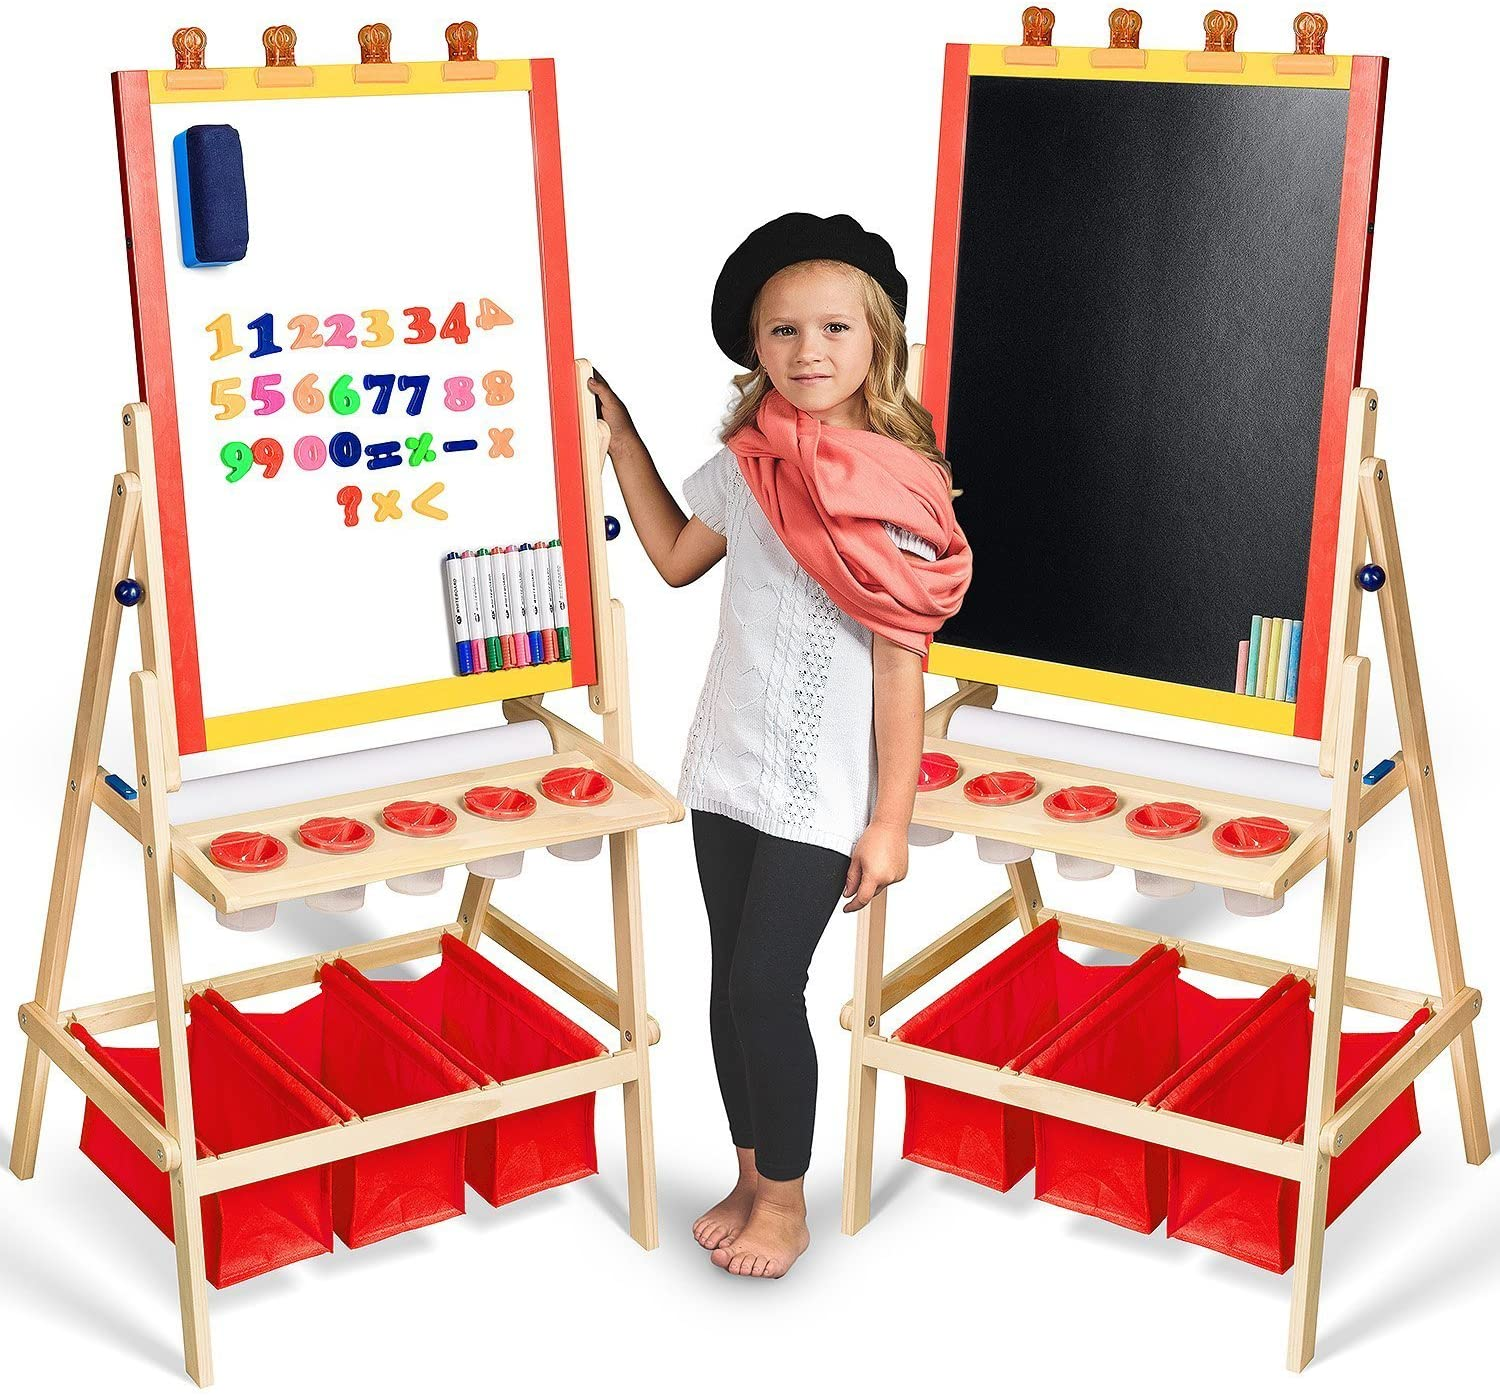 Kids Easel with Paper Roll & Art Supplies